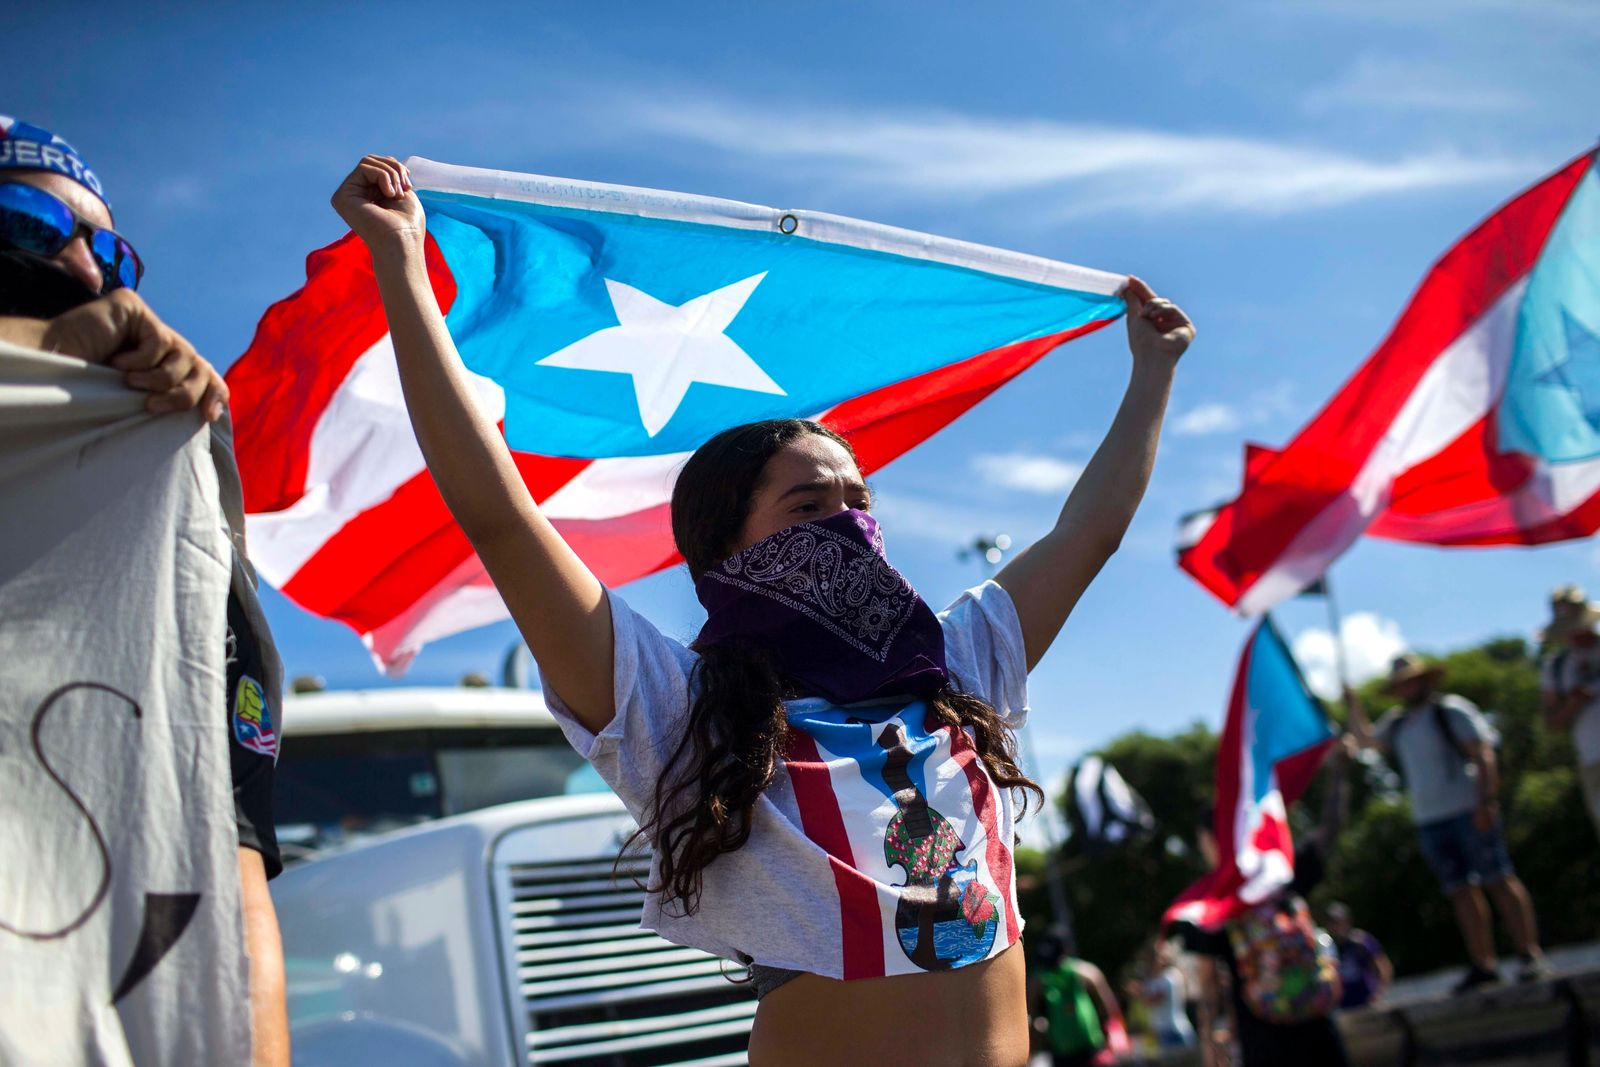 Demonstrators join a protest to demand the resignation of Governor Ricardo Rossello from office, in San Juan, Puerto Rico, Monday, July 22, 2019.{ } (AP Photo/Dennis M. Rivera Pichardo)